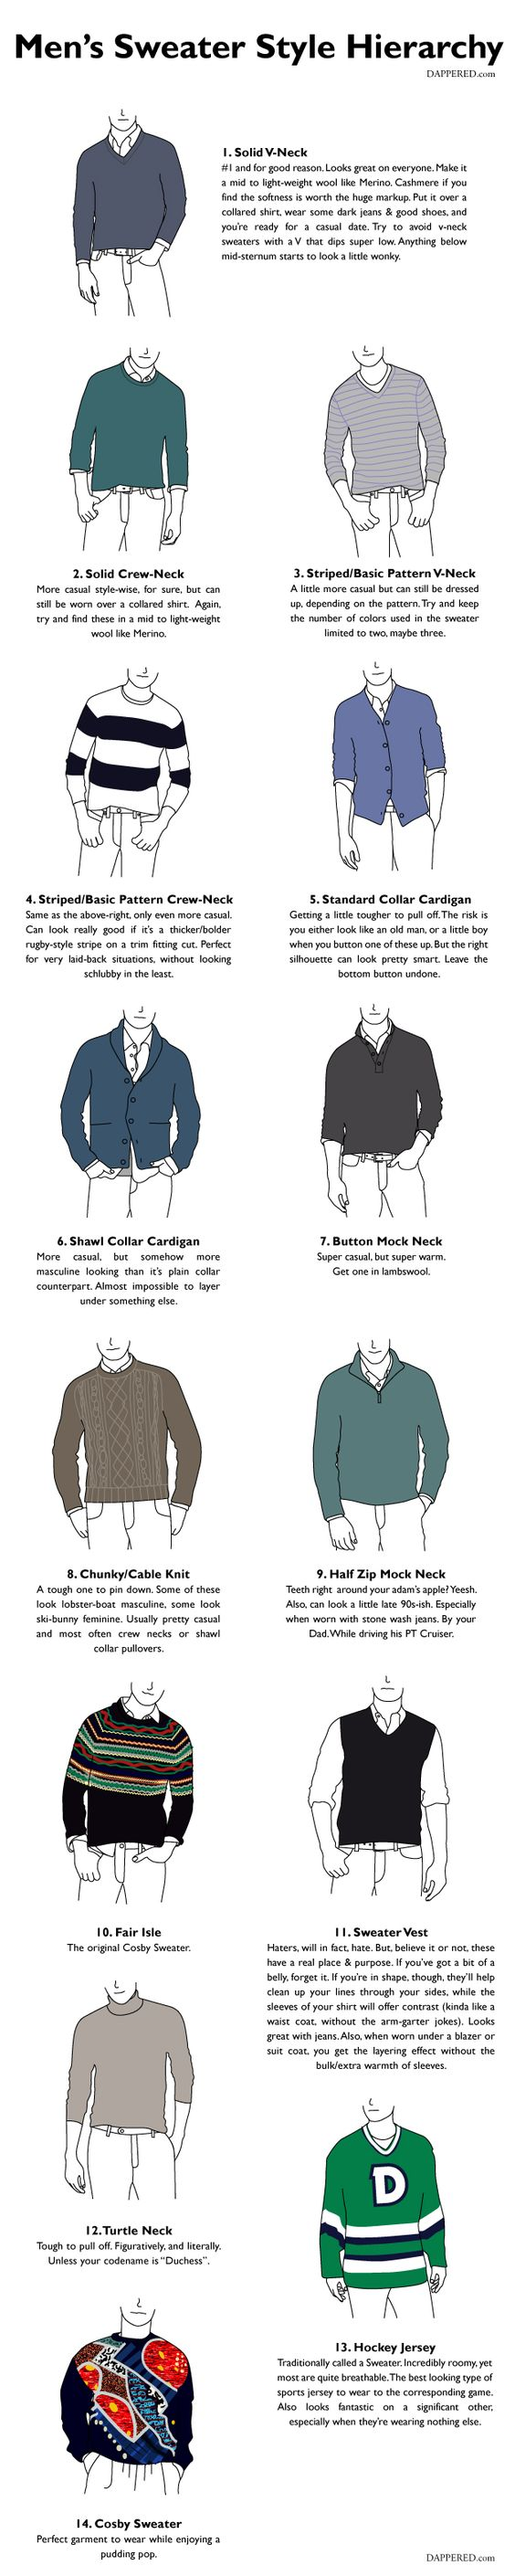 The Men's Sweater Style Hierarchy (via @Dappered)